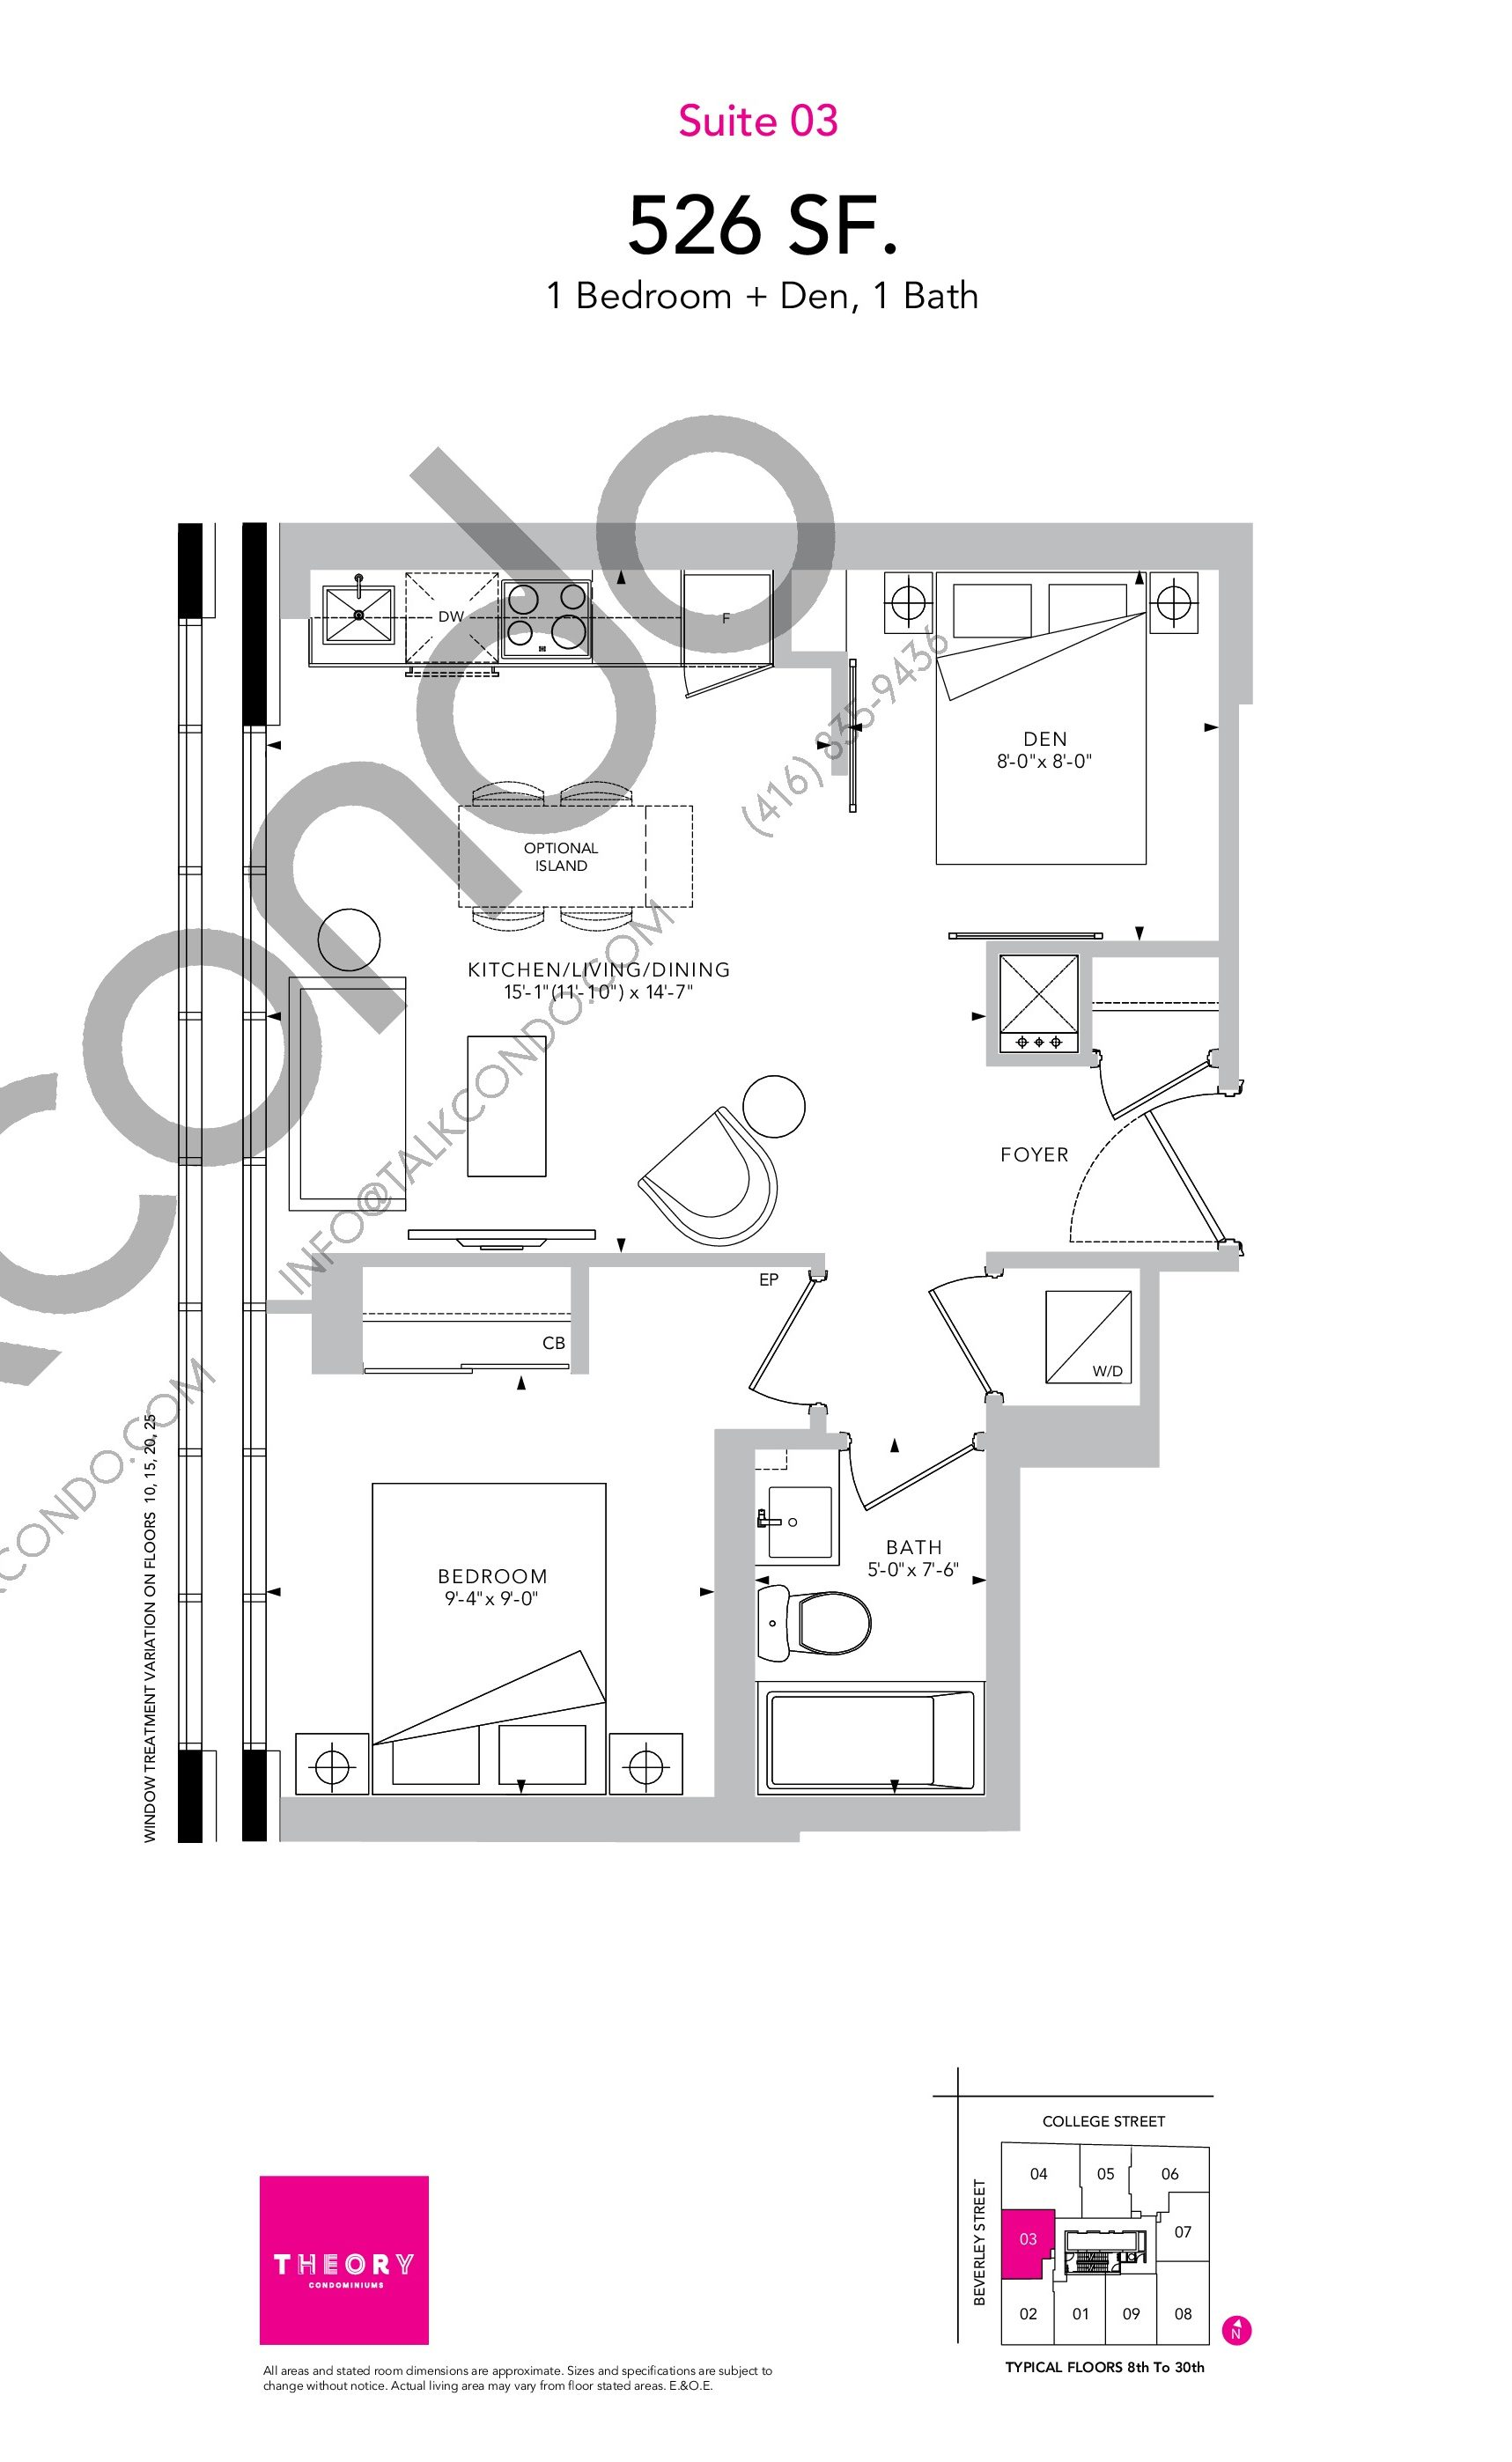 Suite 03 Floor Plan at Theory Condos - 526 sq.ft